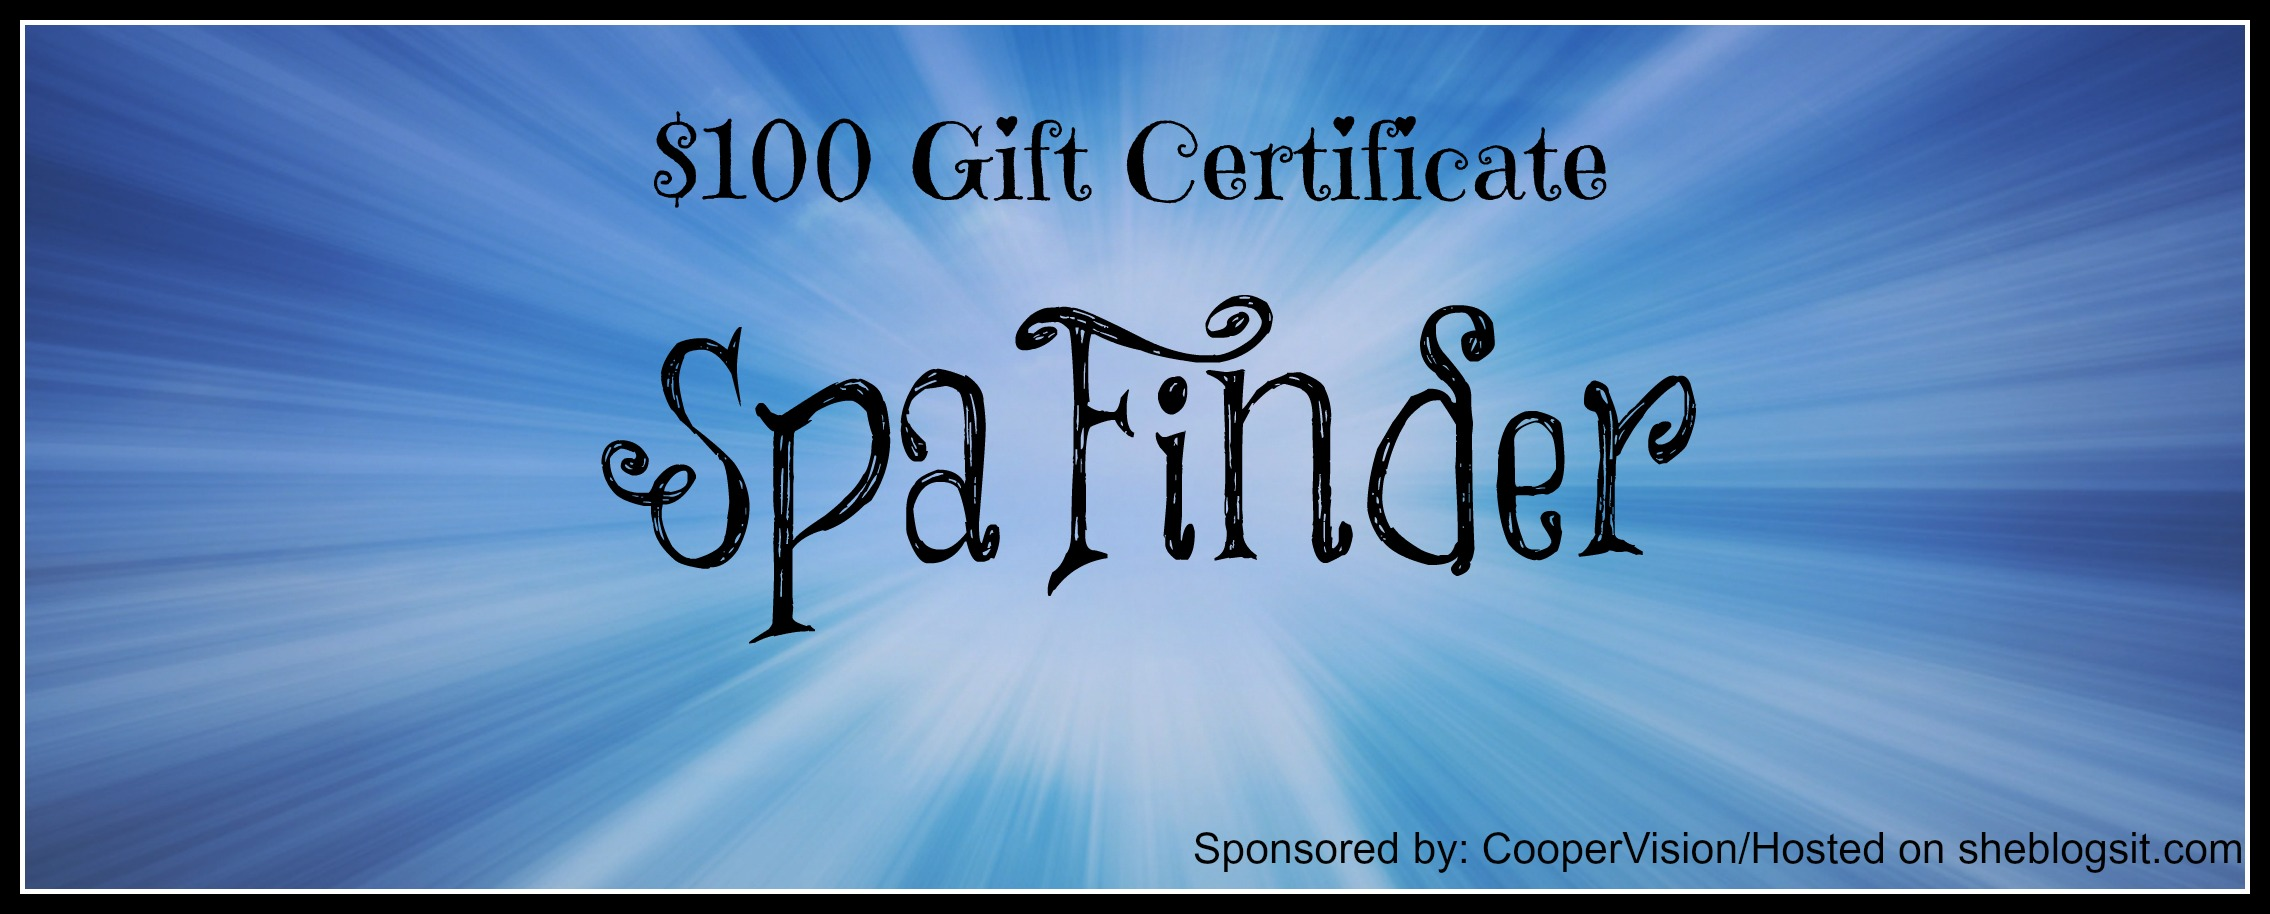 Spa Finder gc